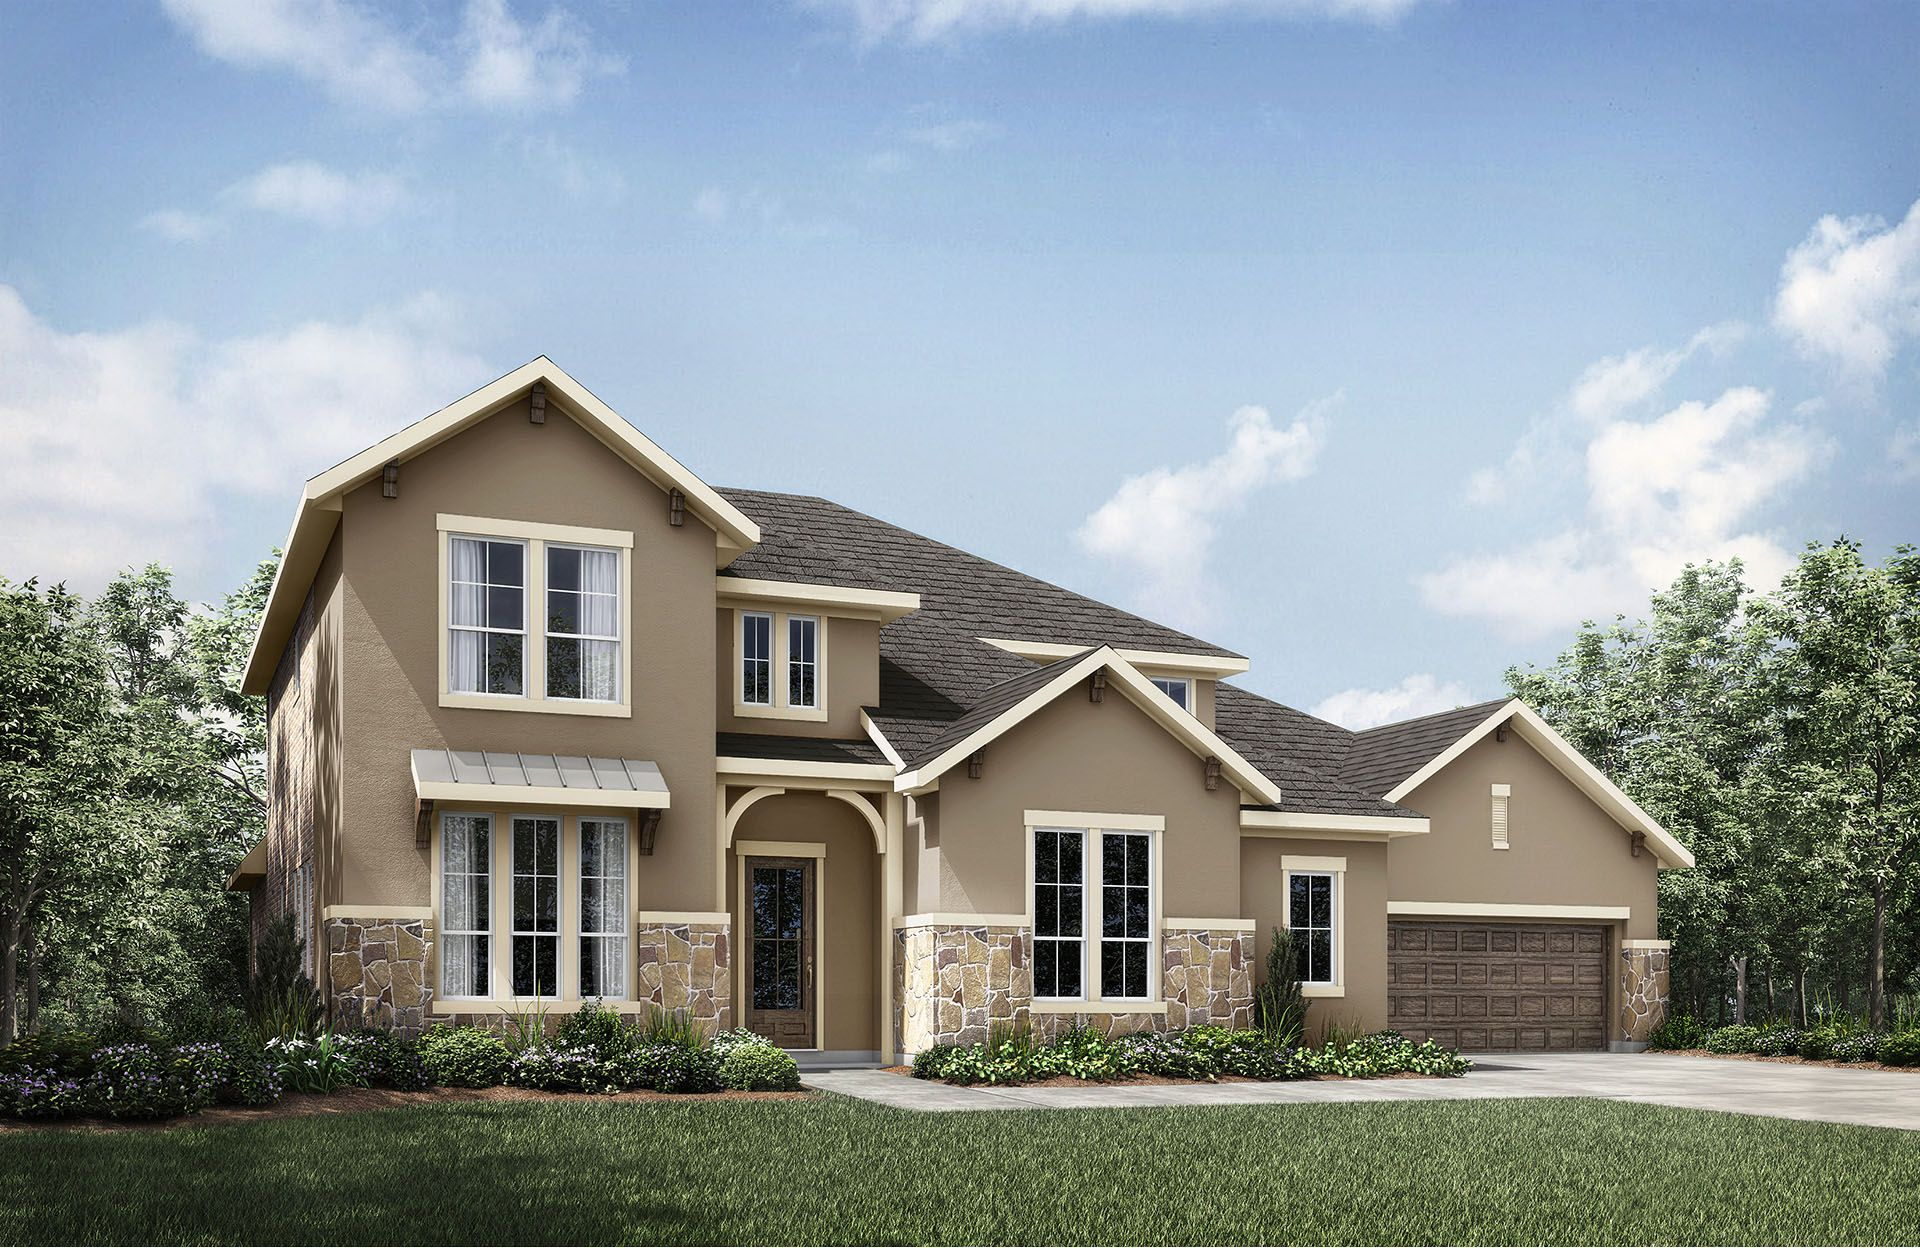 Unifamiliar por un Venta en Woodtrace - Sommers 33823 Mill Creek Way Pinehurst, Texas 77362 United States